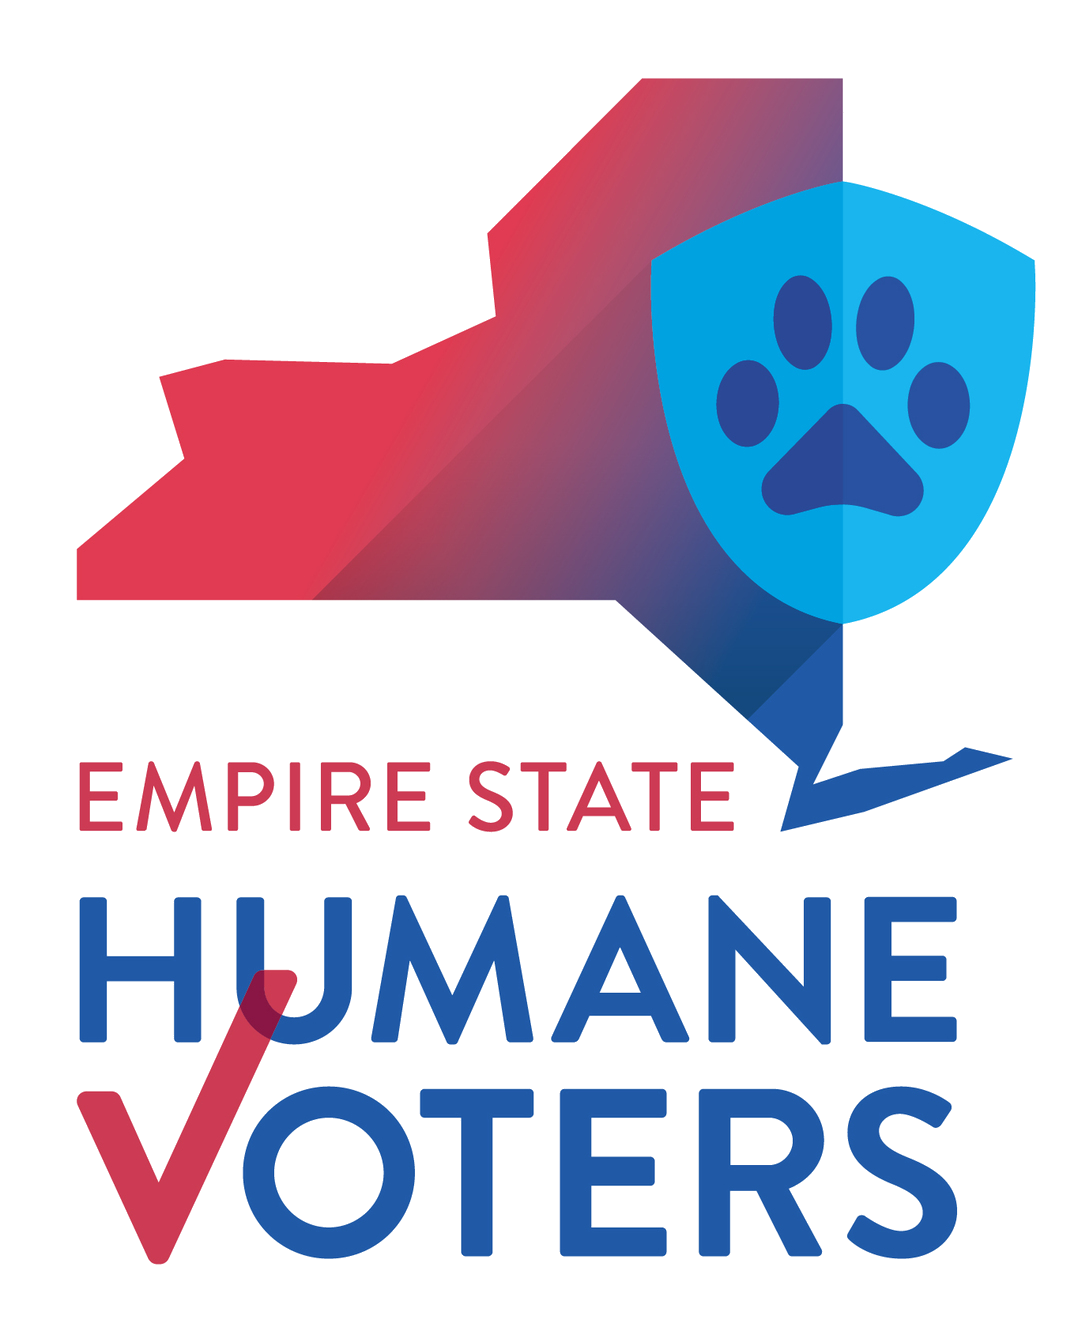 Empire State Humane Voters